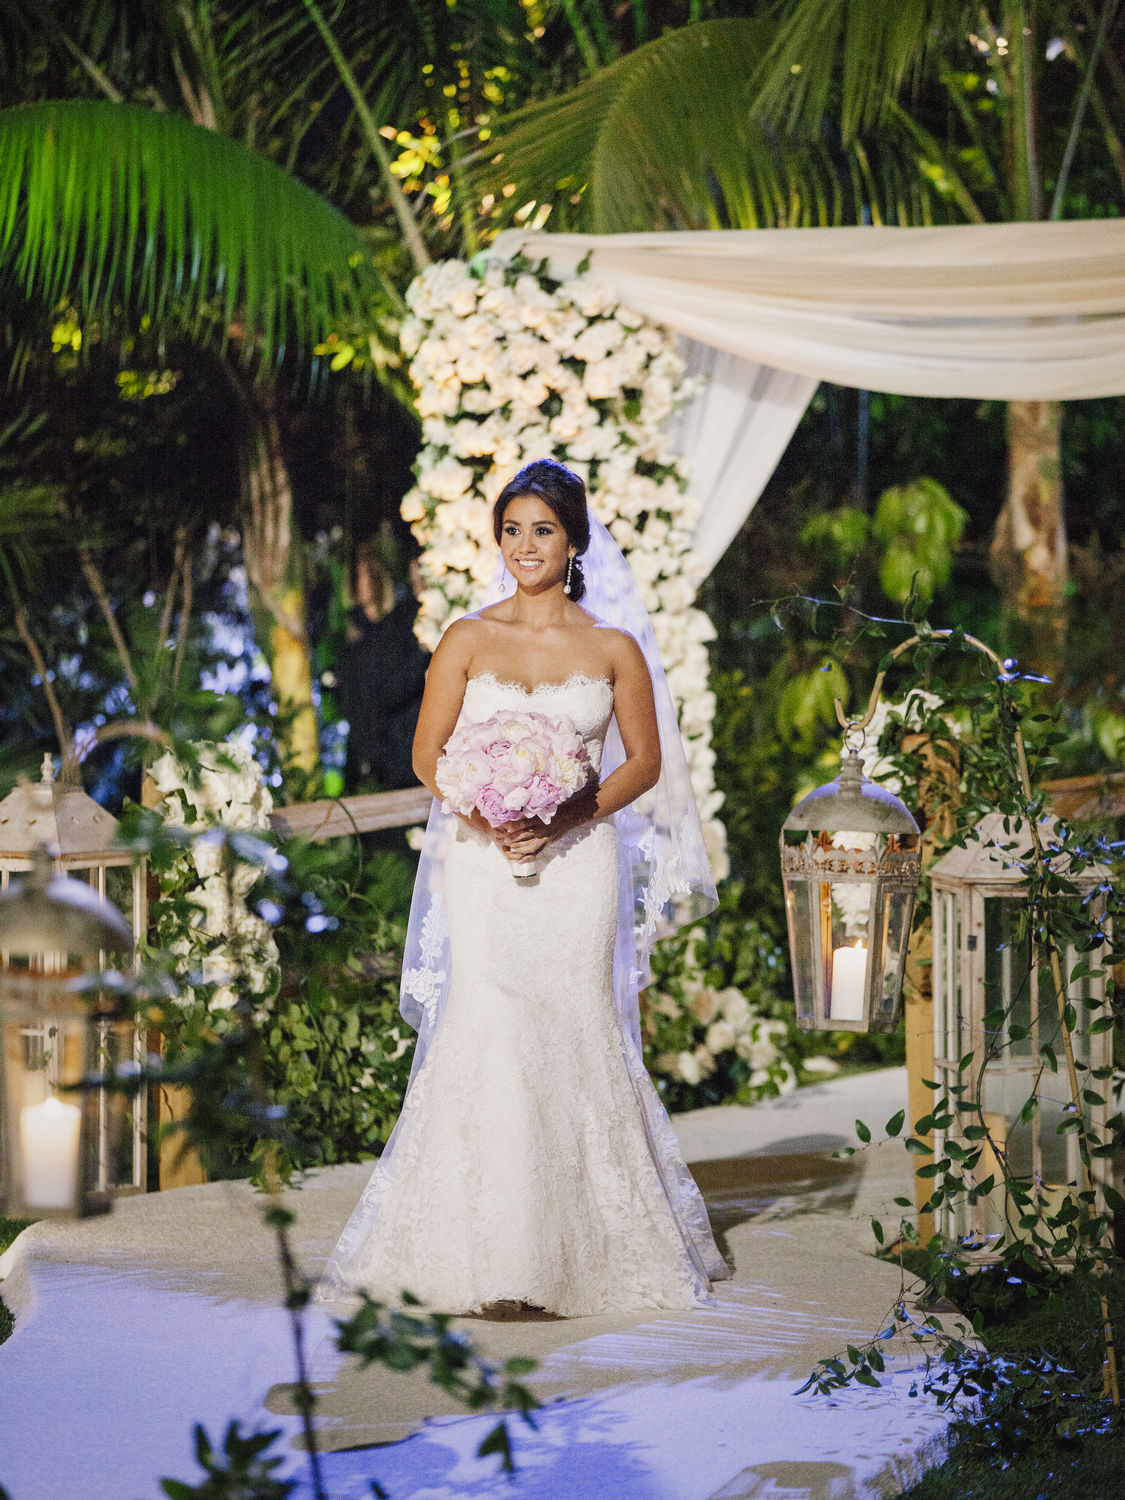 wedding-abc-bachelor-sean-lowe-catherine-guidici-johnandjoseph143.jpg